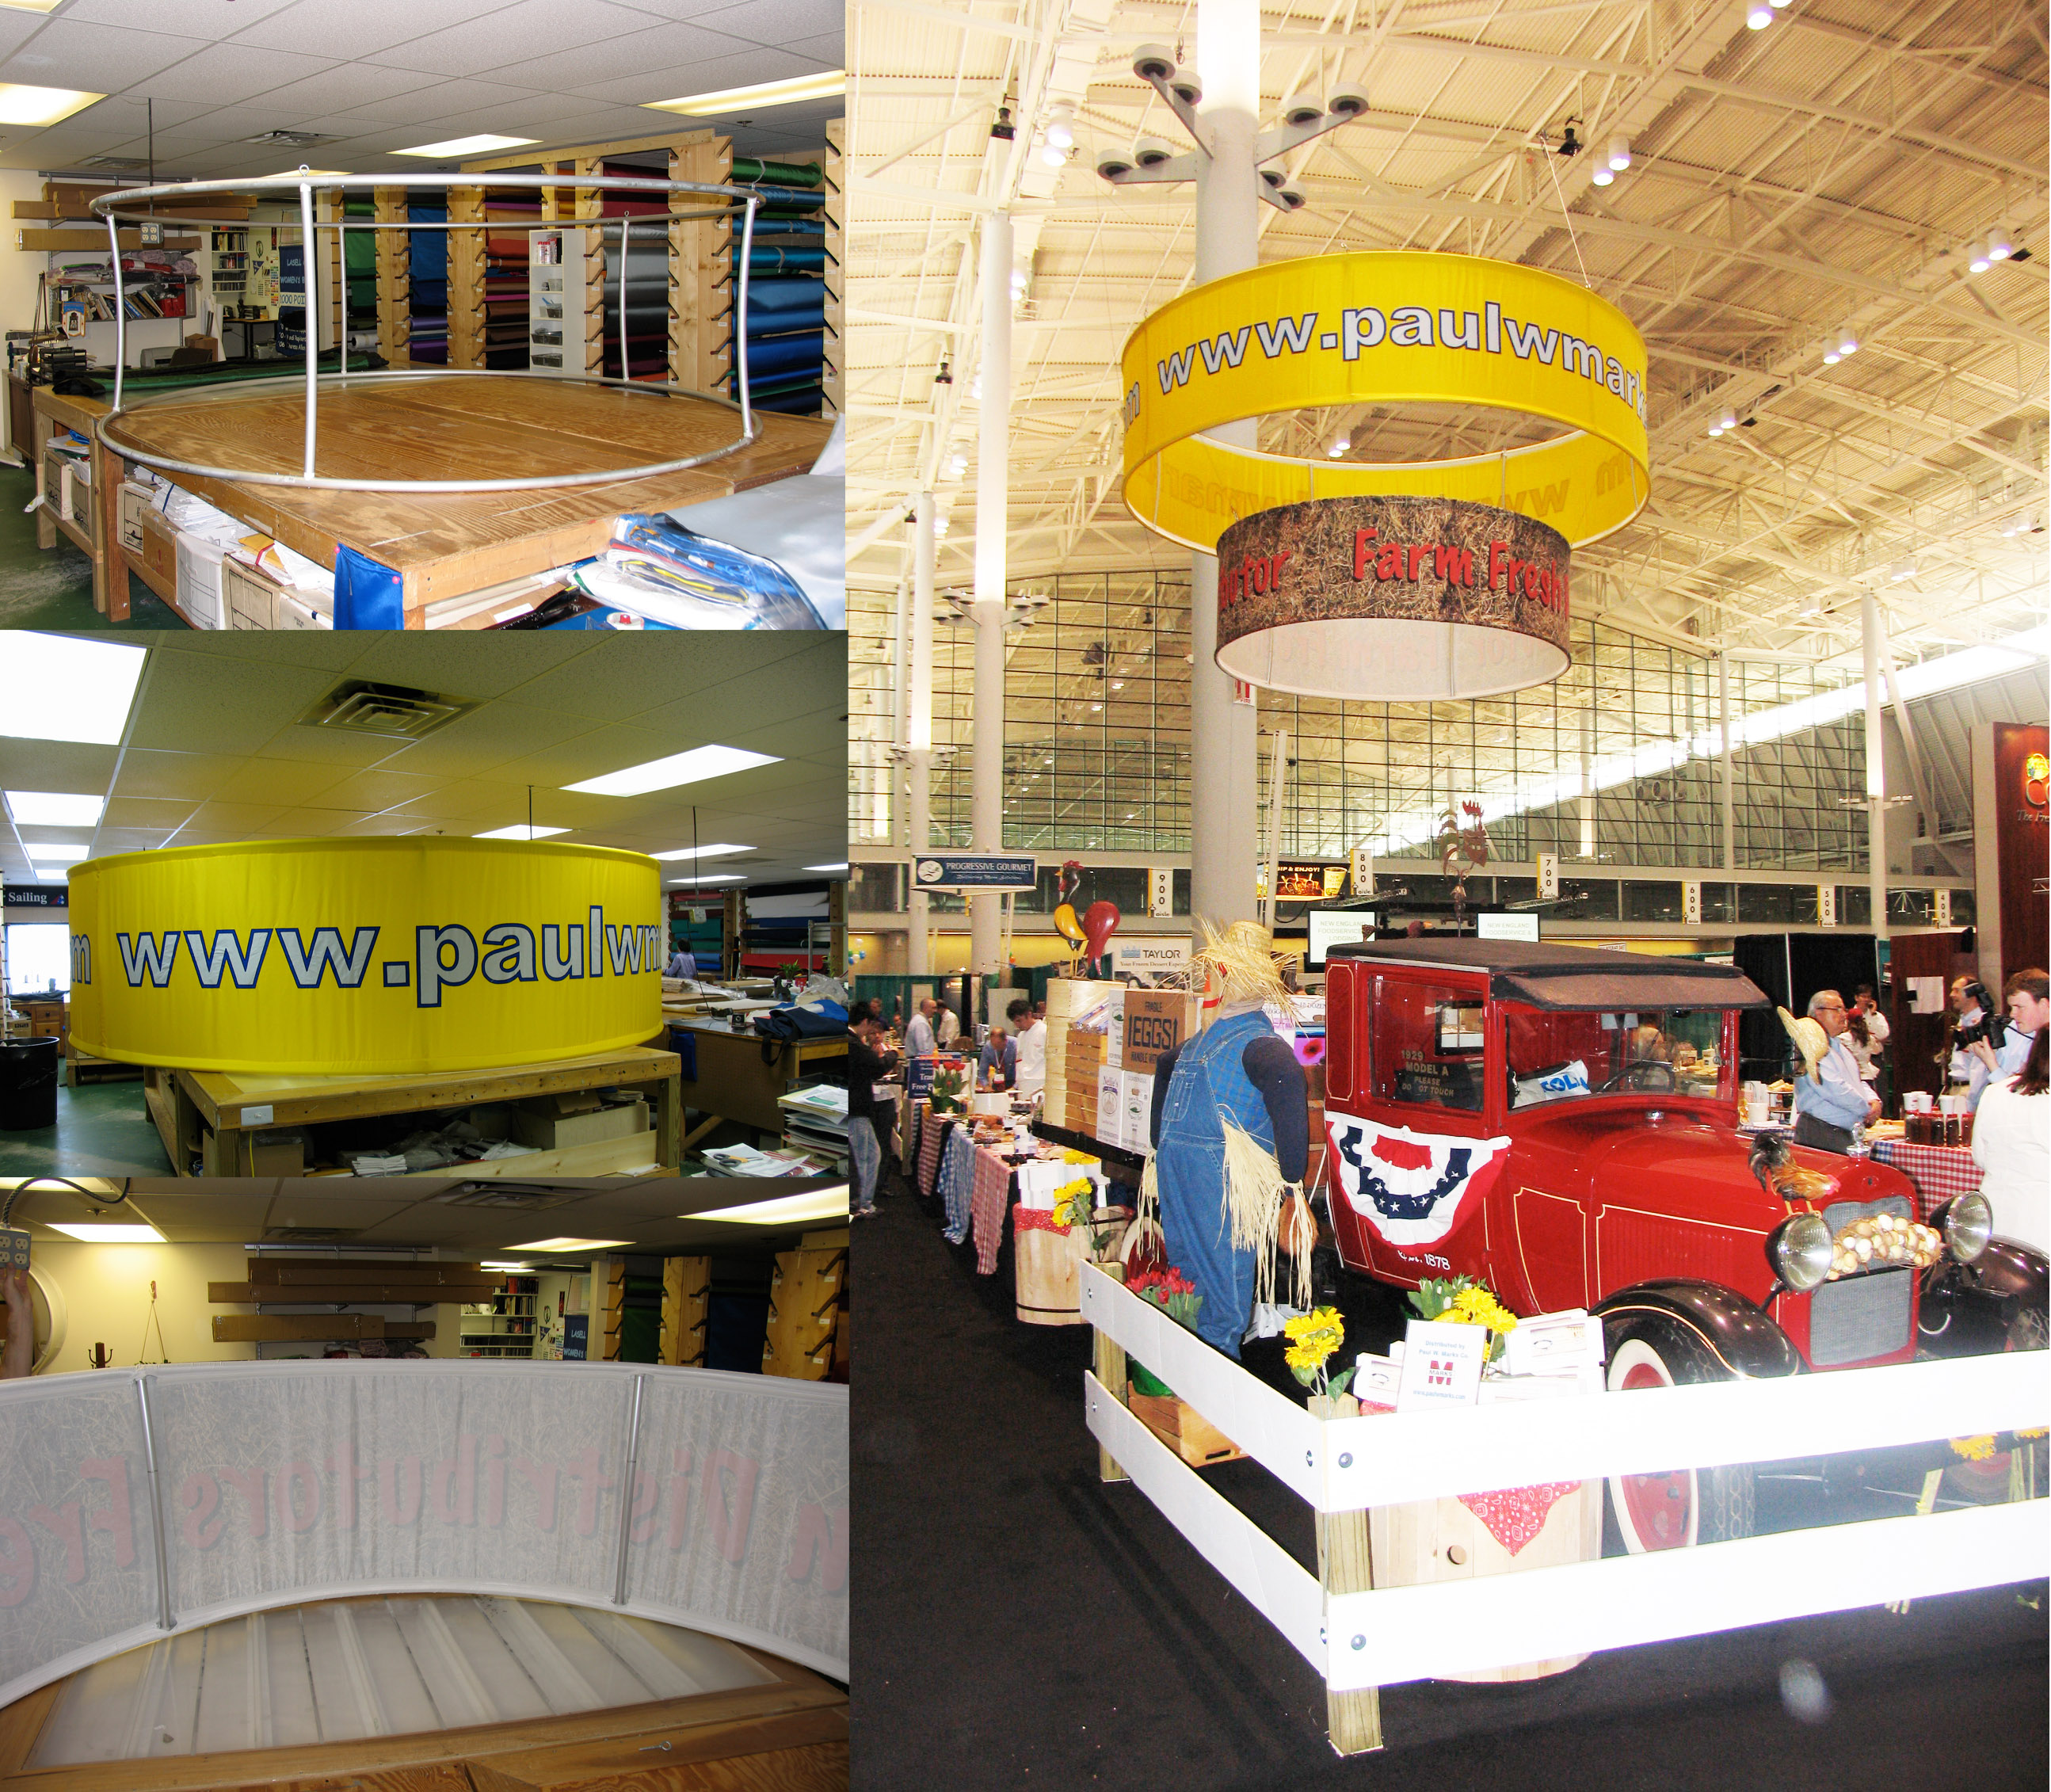 Exhibitions with tension fabric structures custom by Accent Banner